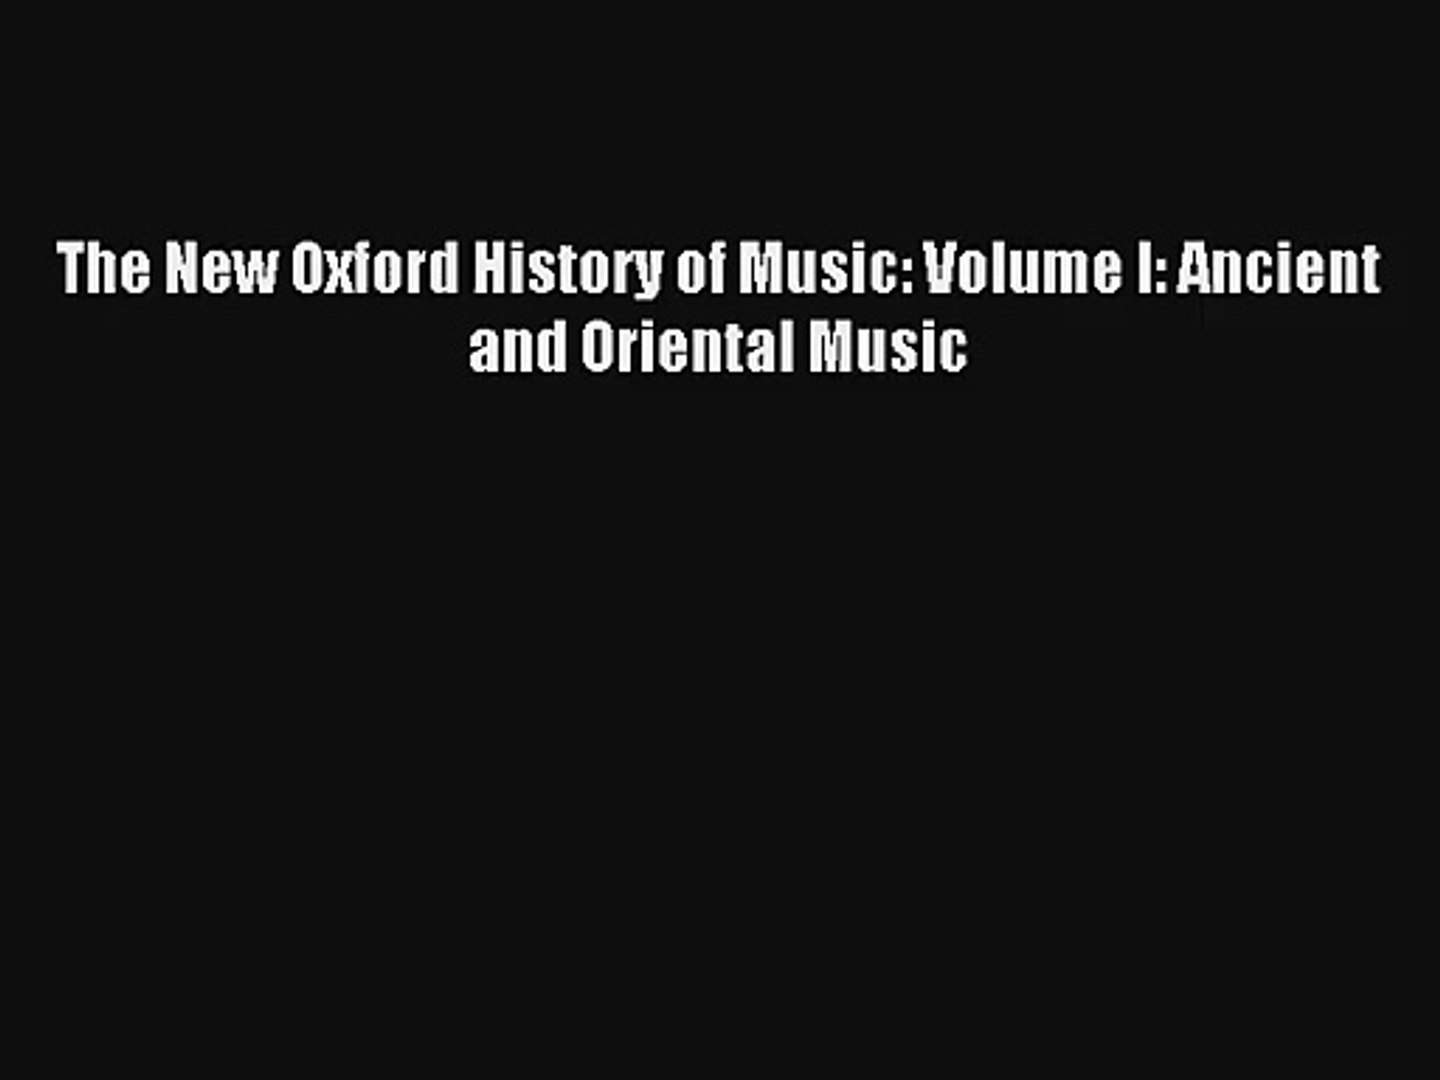 [PDF Download] The New Oxford History of Music: Volume I: Ancient and Oriental Music [Download]